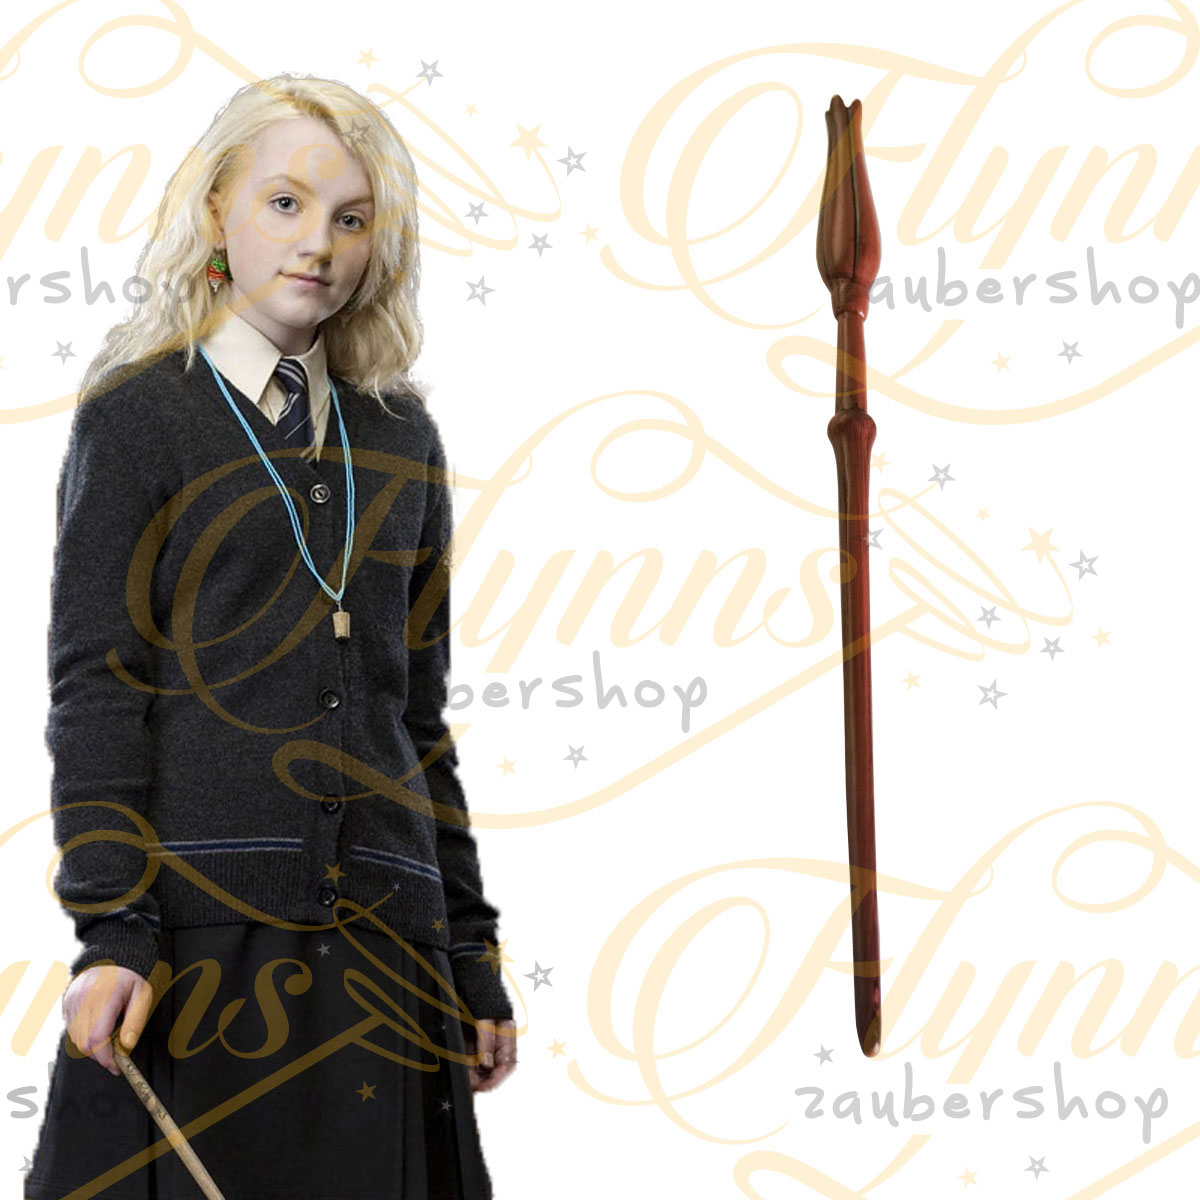 Luna Lovegood | Harry Potter | Flynns Zaubershop